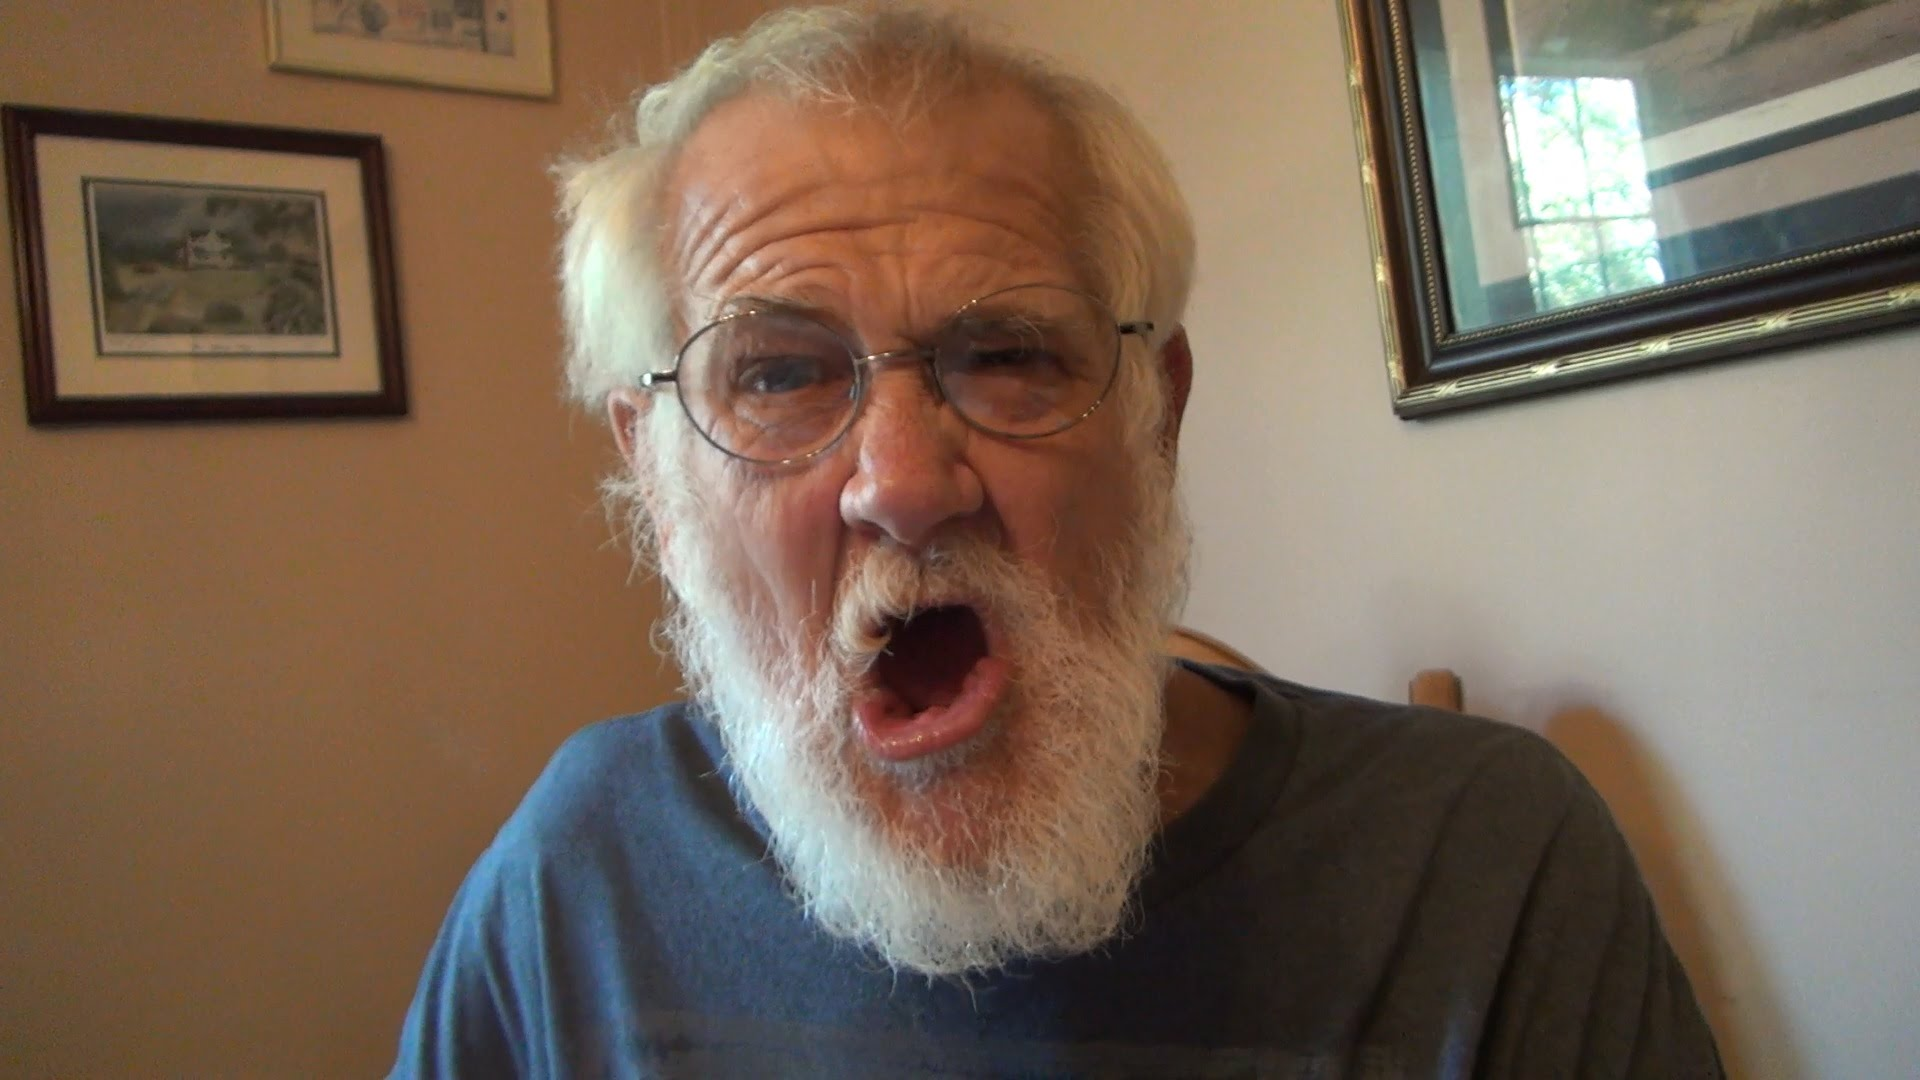 Angry Grandpa | Know Your Meme